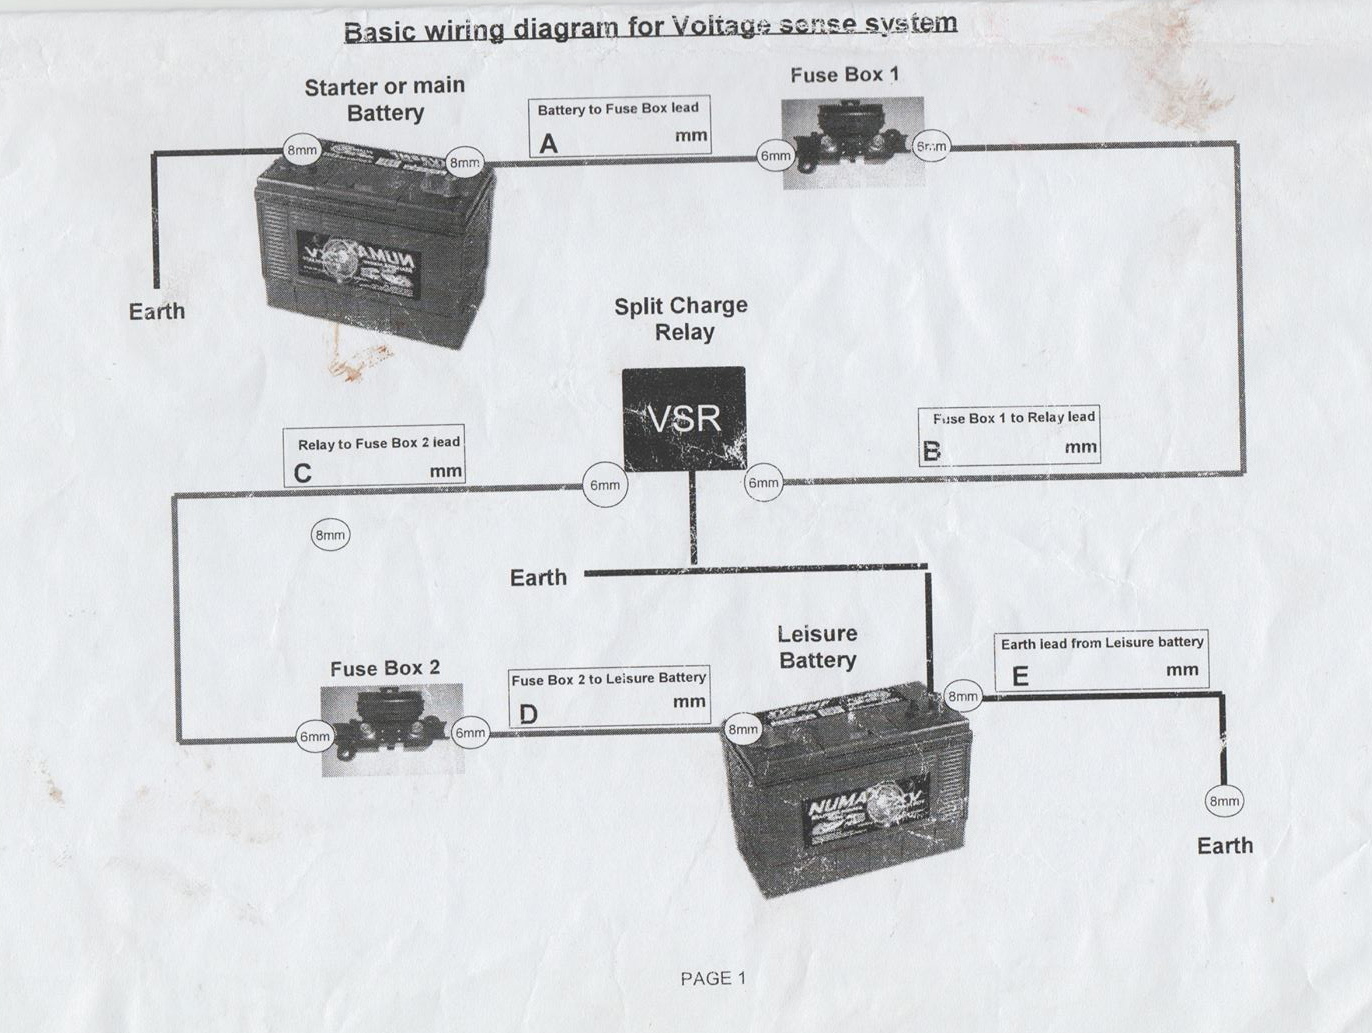 Leisure battery wiring diagram dolgular electrics untilthewheelsfallof asfbconference2016